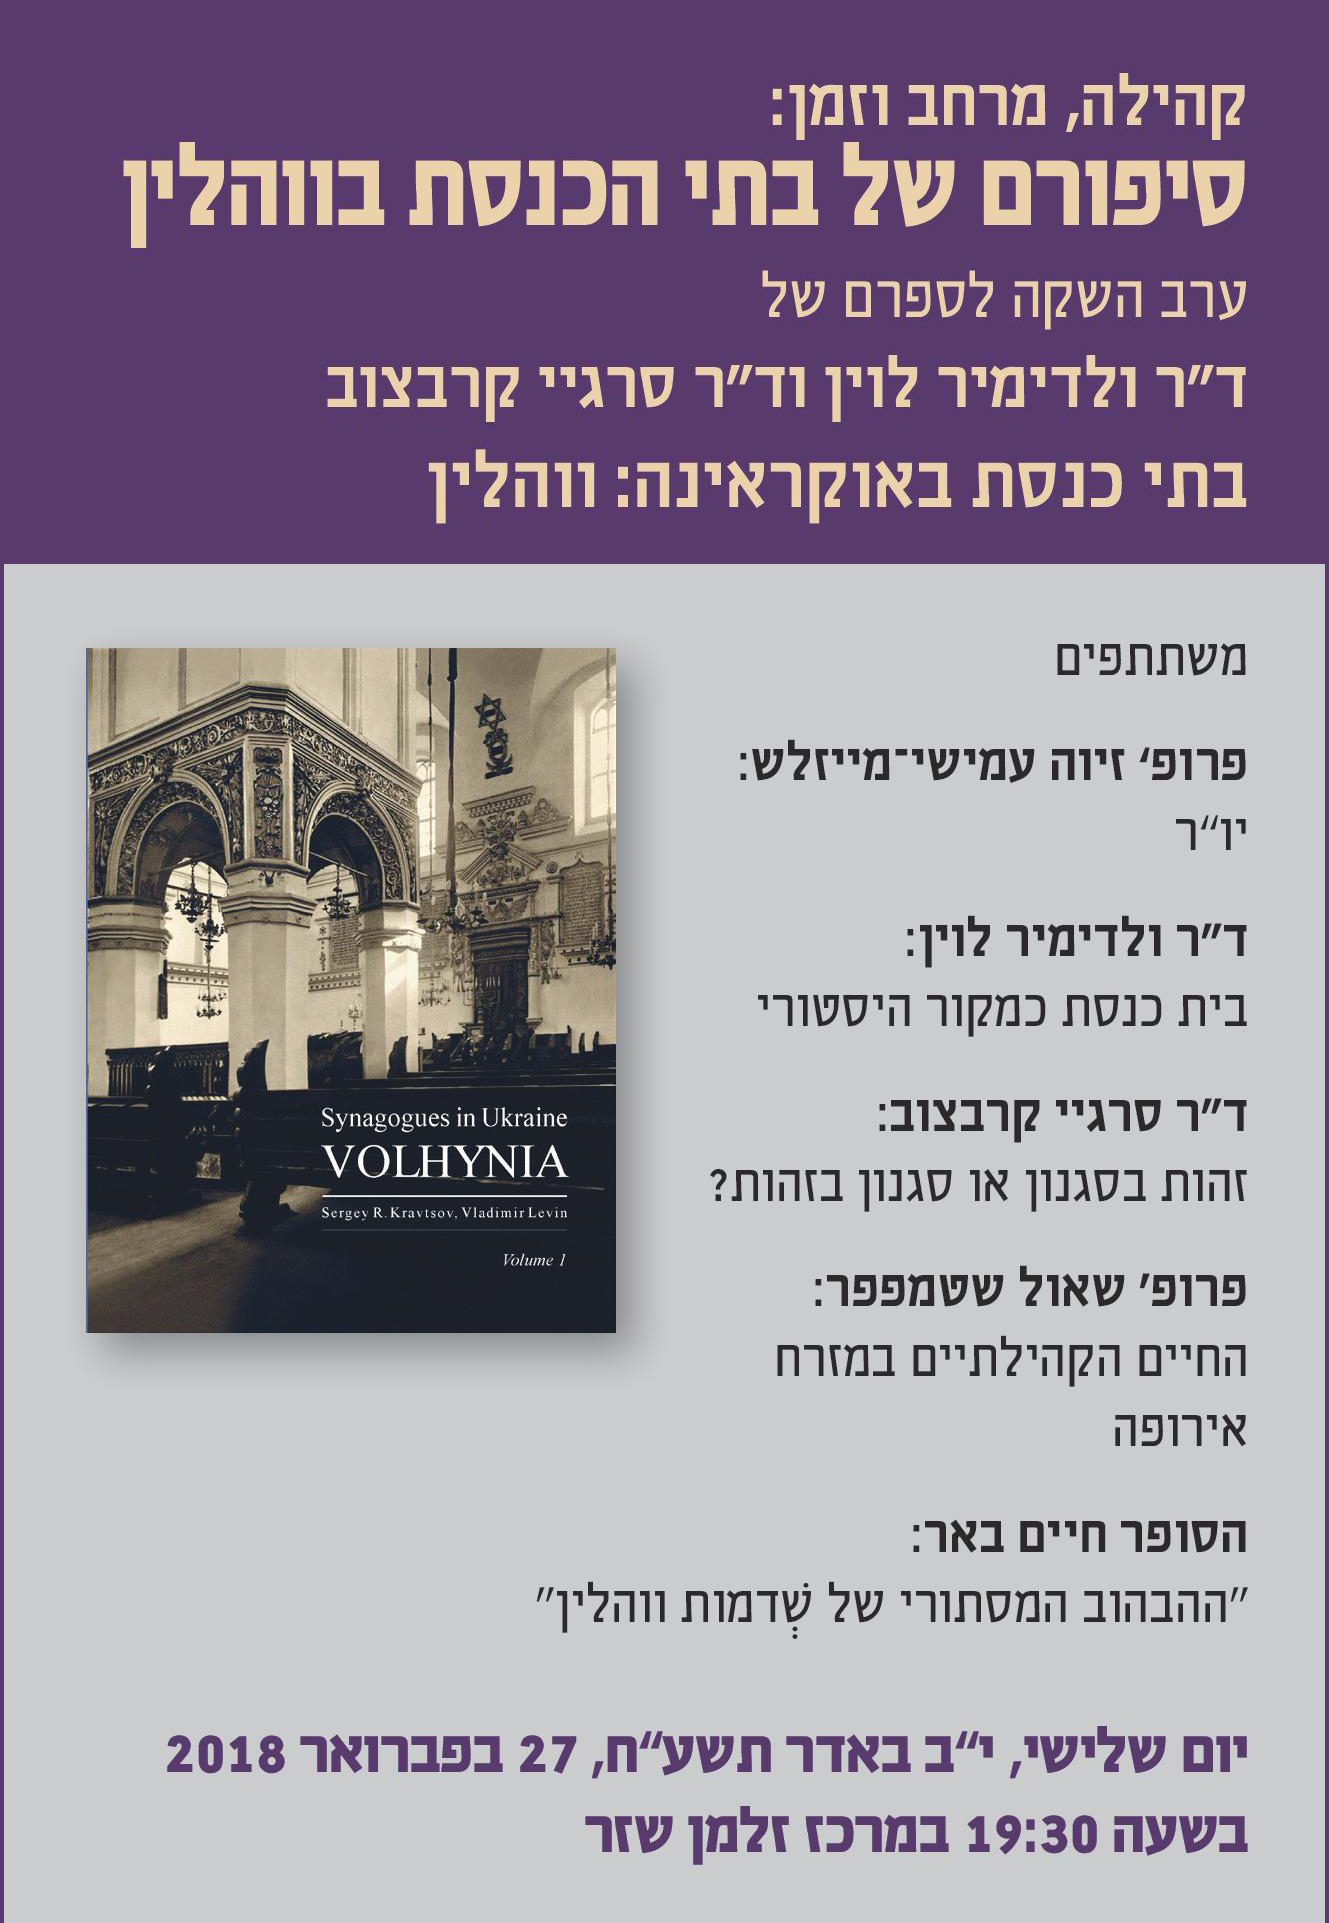 Stories of the Synagogues of Volhynia